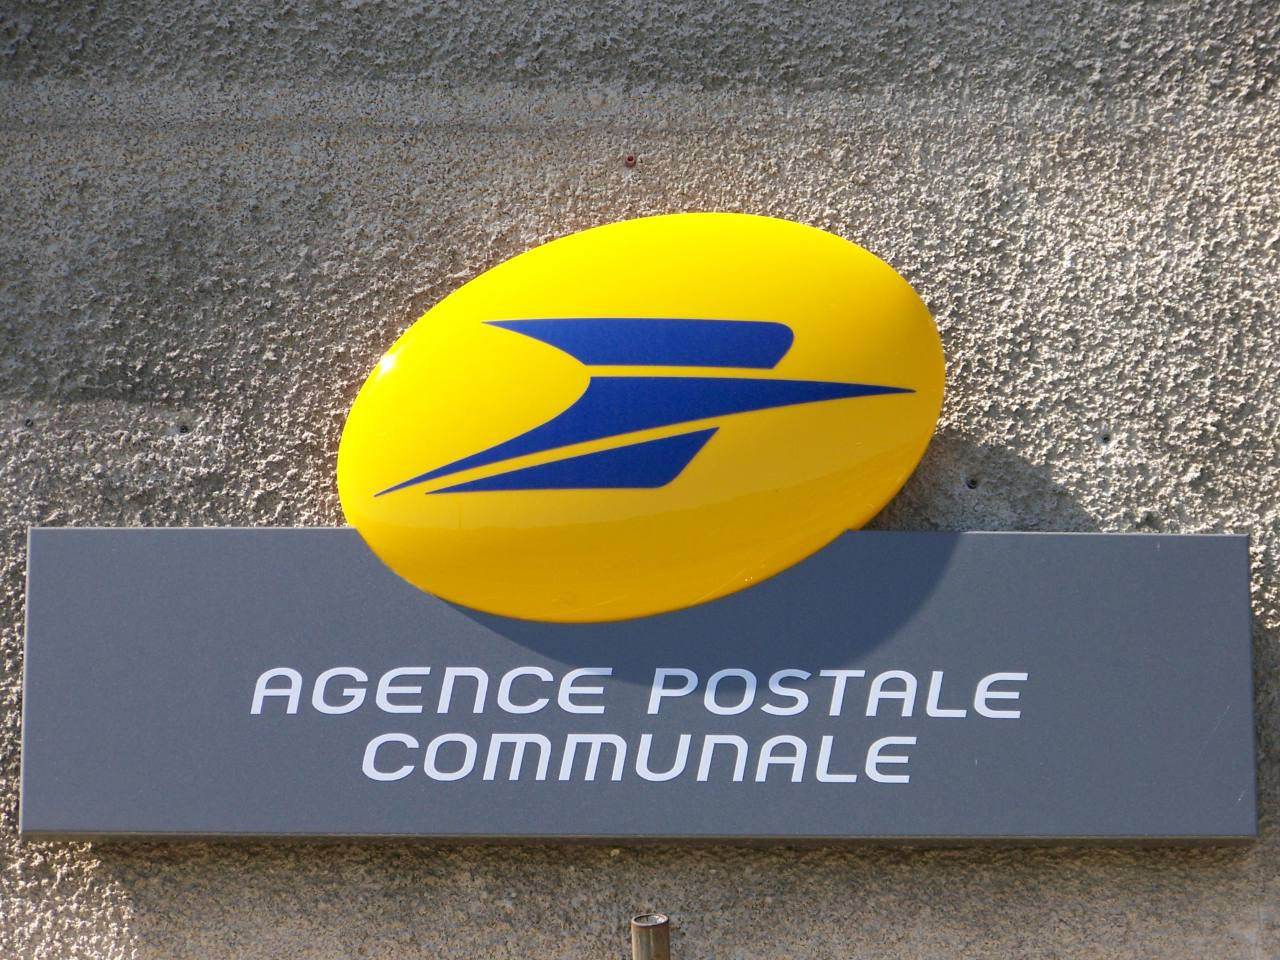 agence-postale-communale